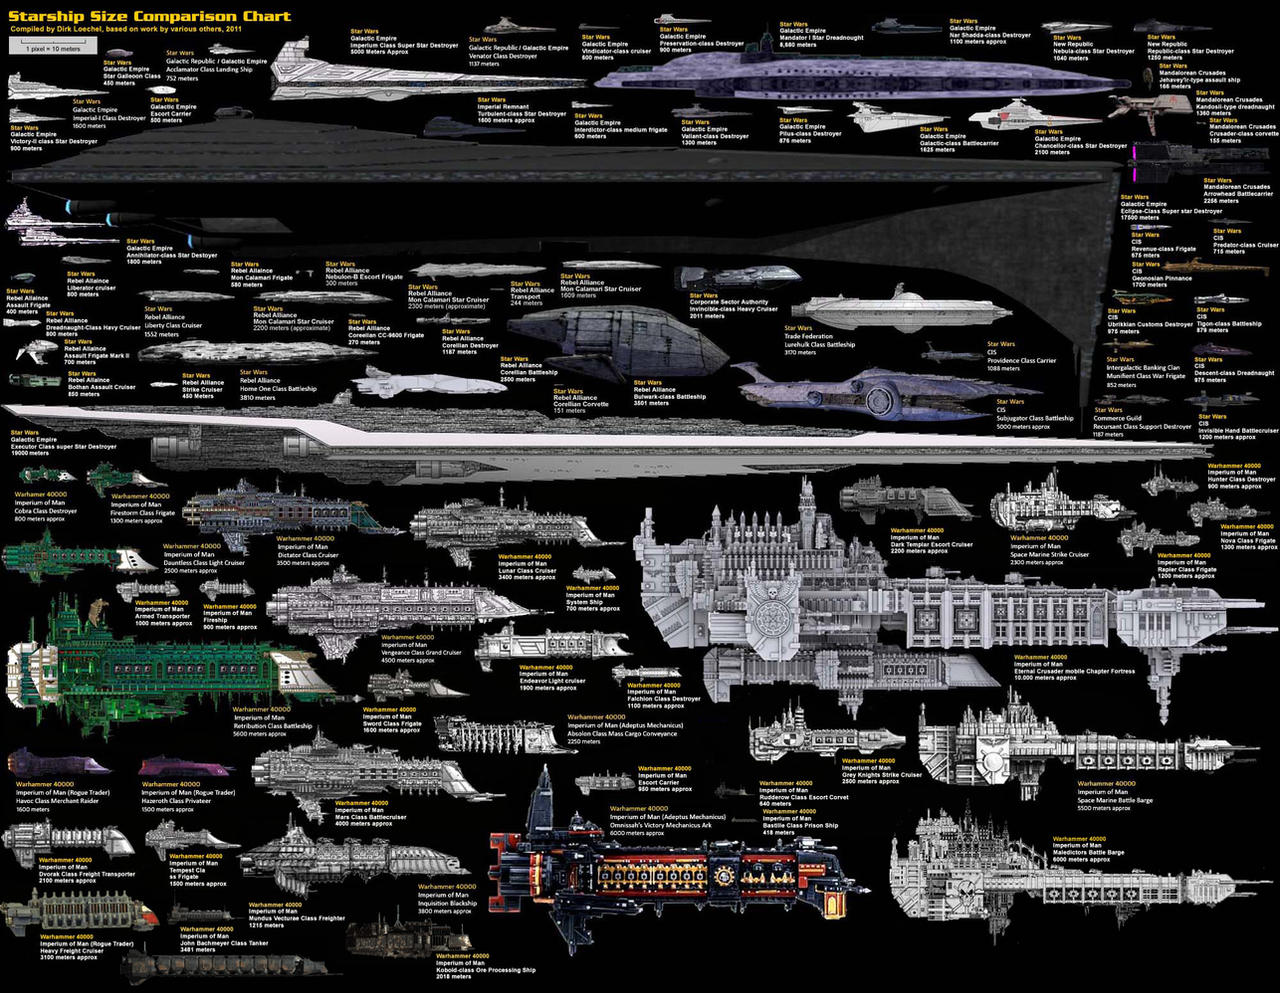 starwars_and_wh40k_ships_2_by_dirkloeche